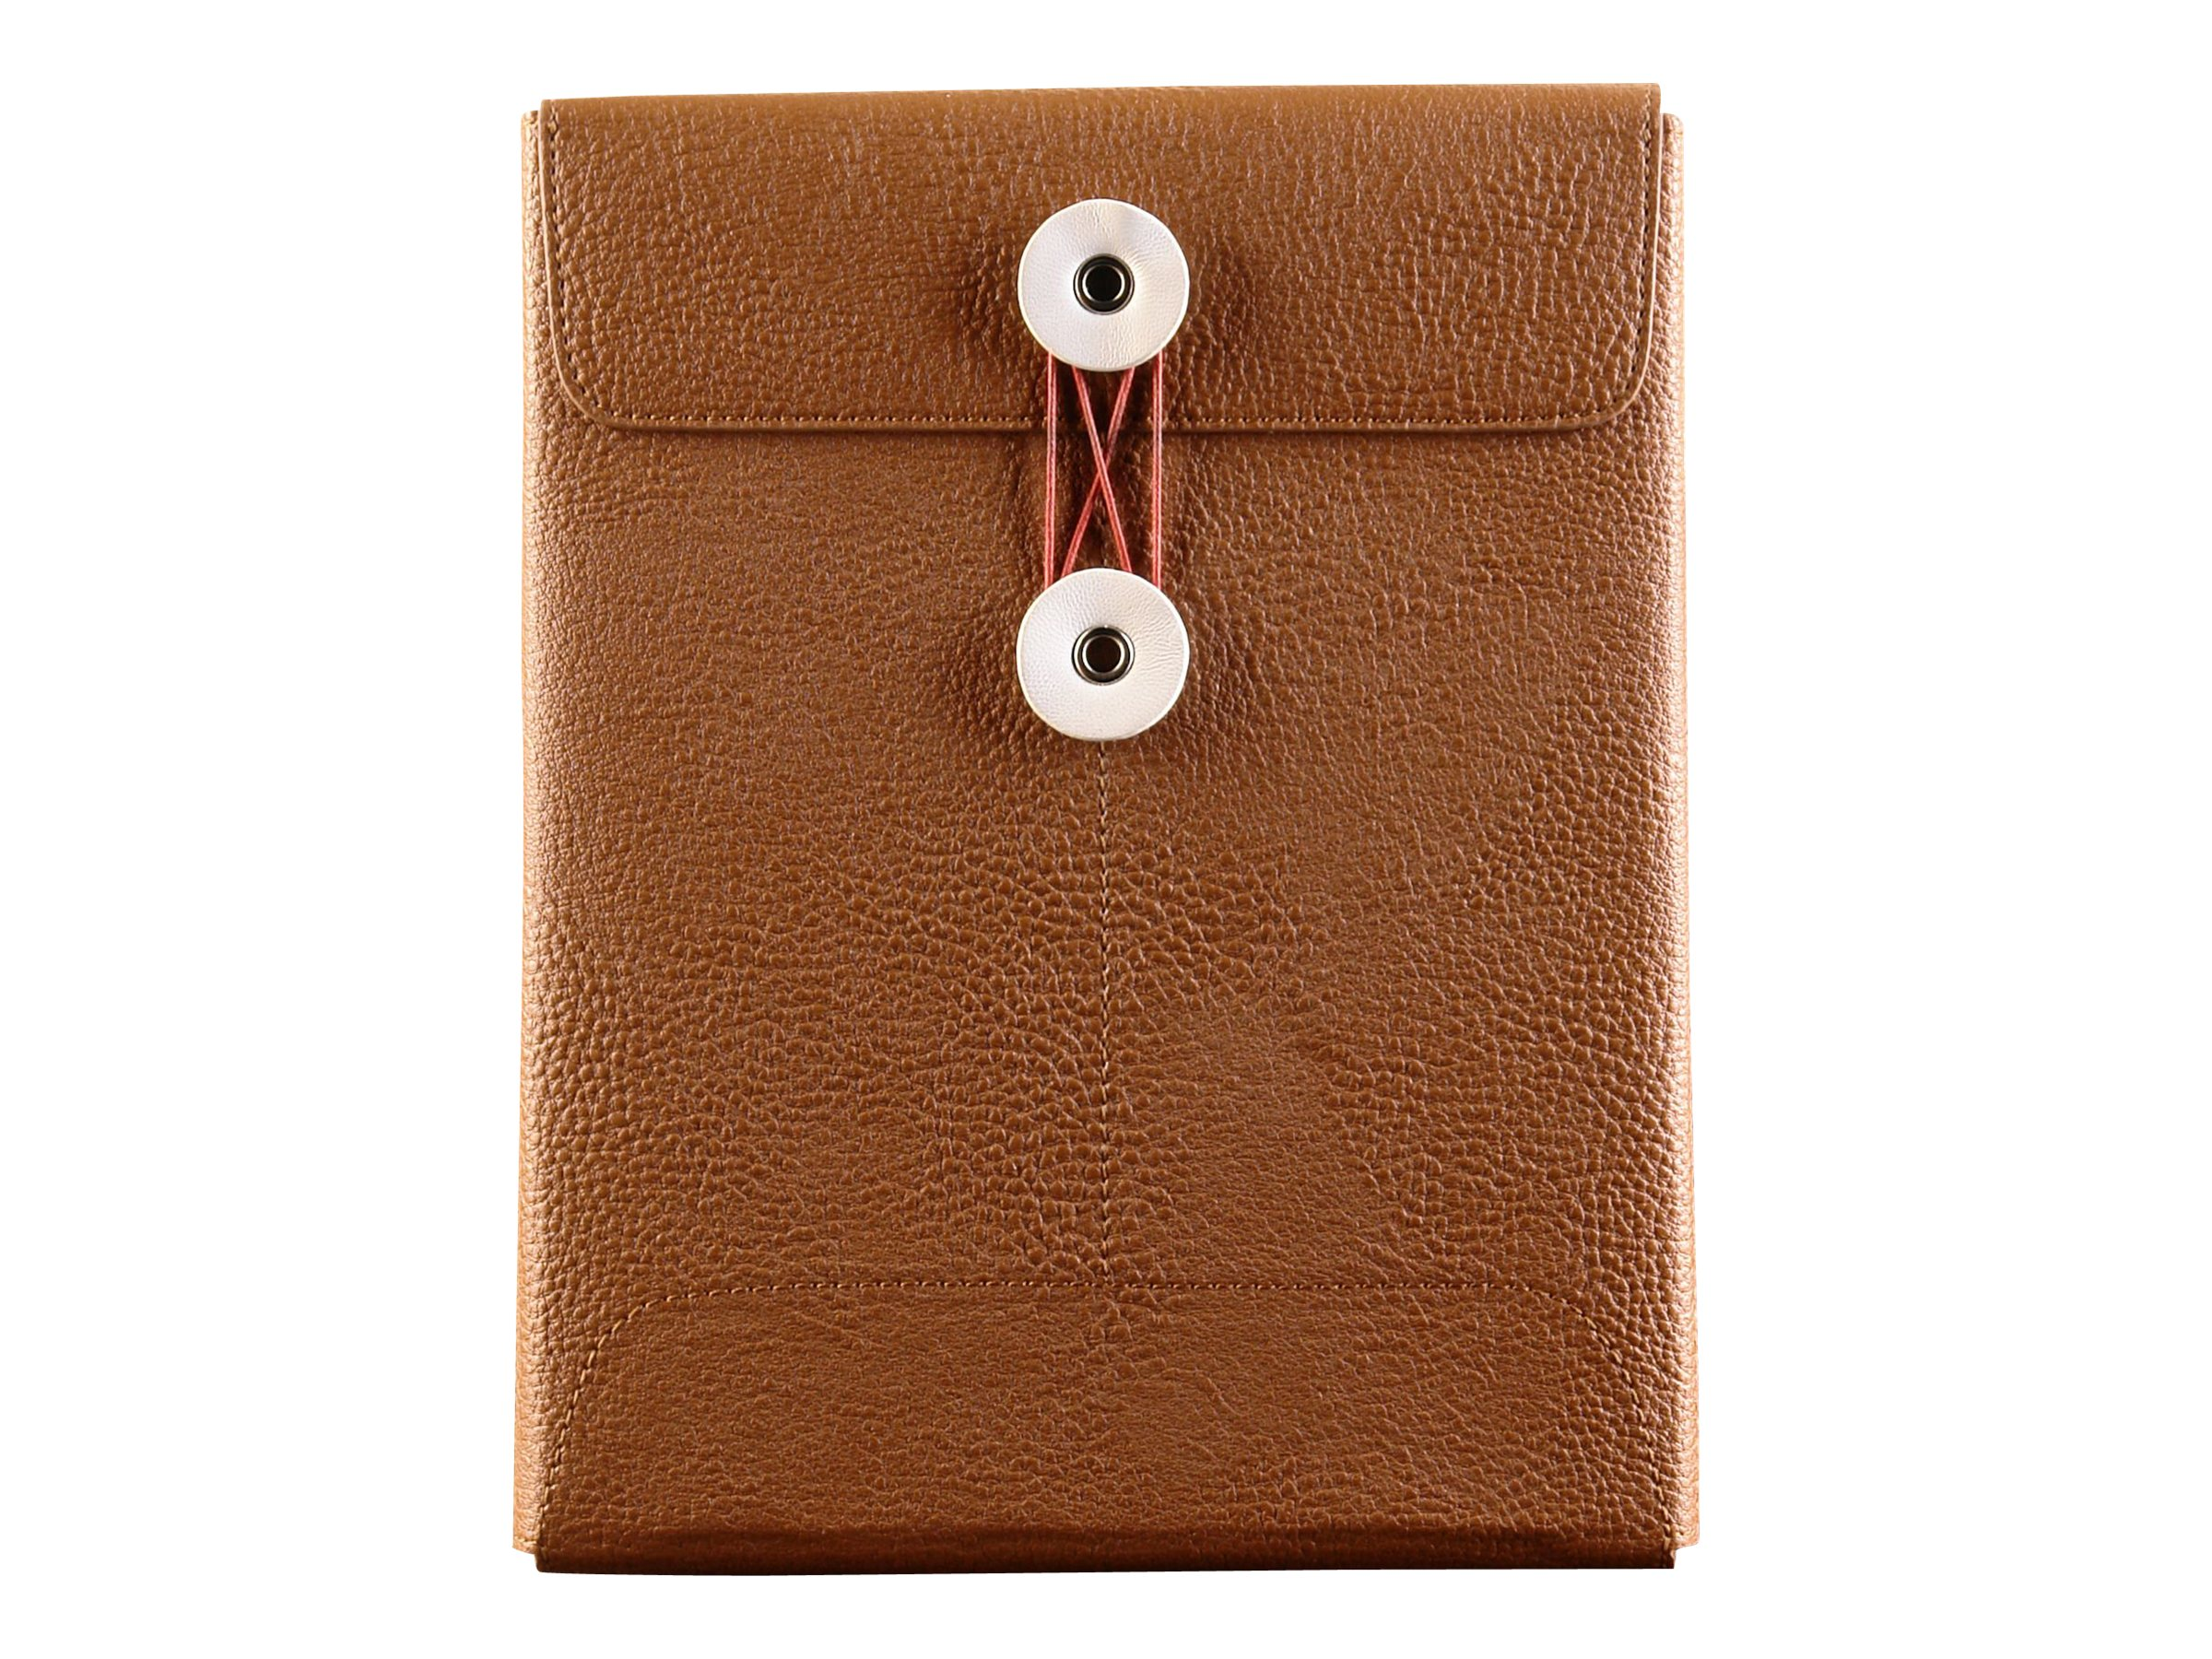 Eco Style Envo iPad Sleeve, Brown, EENV-BR10, 13932982, Protective & Dust Covers